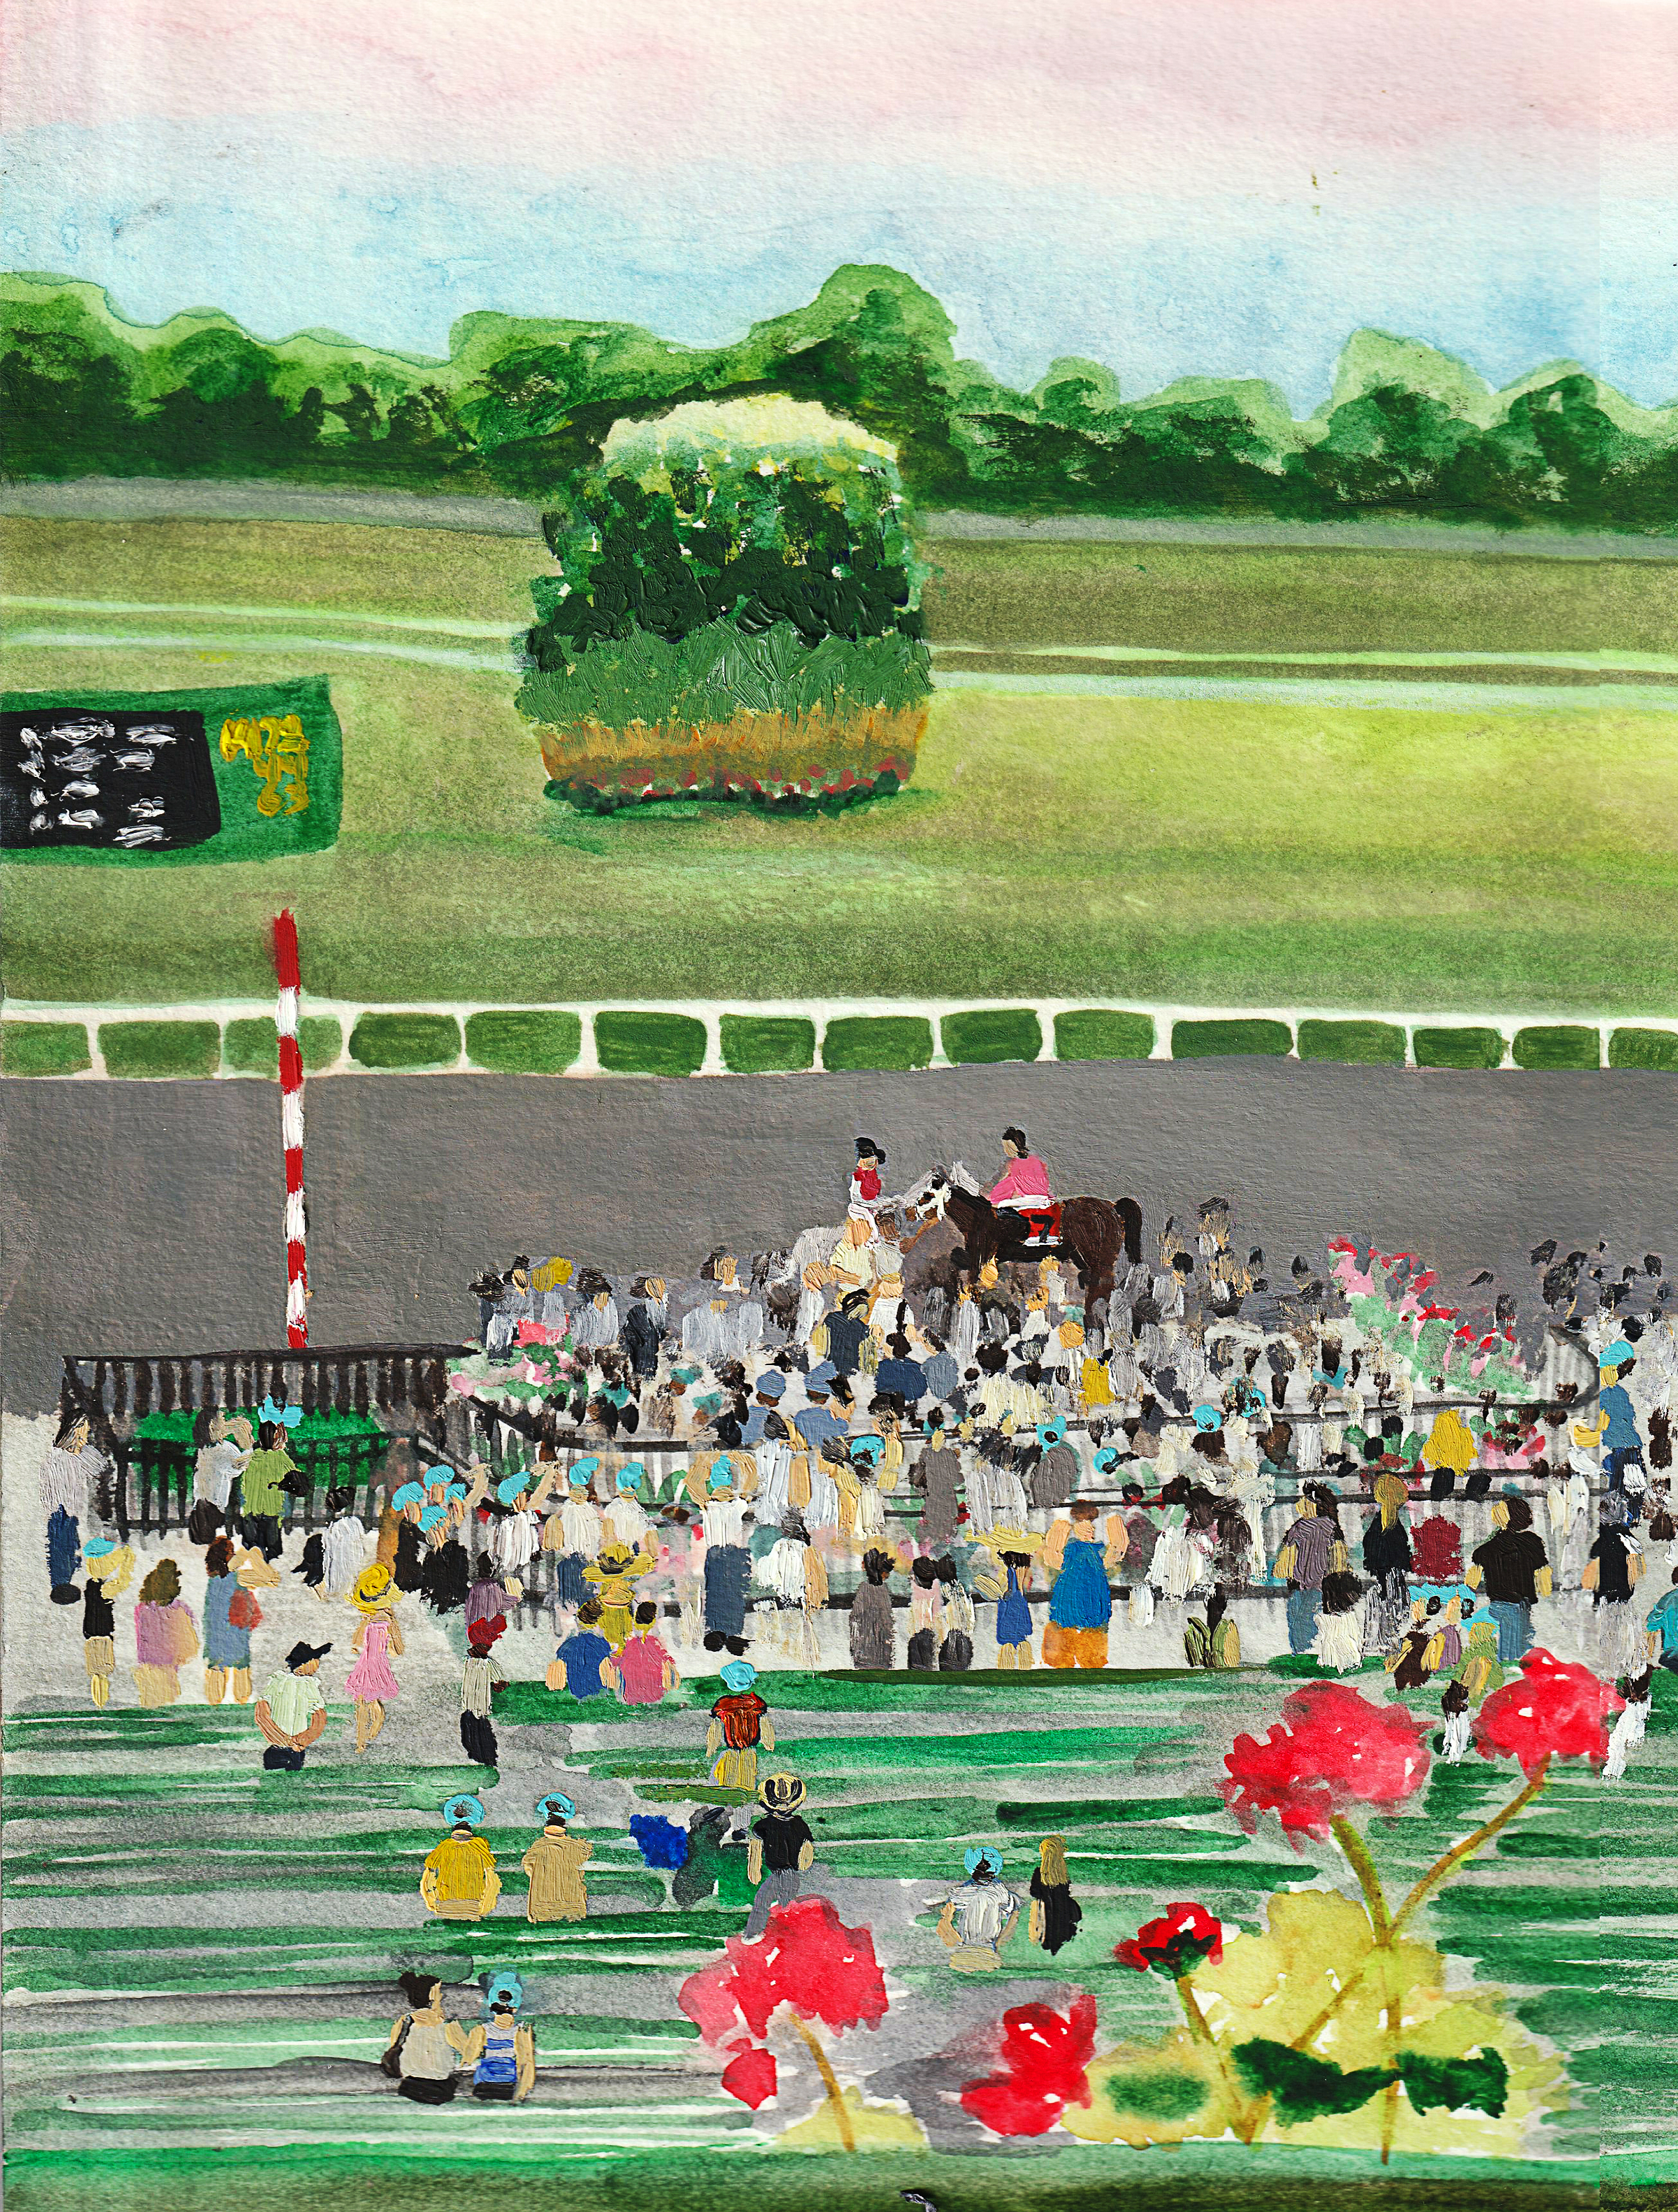 secretariat-painting-katrina-eugenia-oil-painting-painter-monmouth-park-racetrack-monmouth-racetrack-maximum-security-haskell-2019-thoroughbred-racing-racehorse-painting-race-horse-painting13.jpg